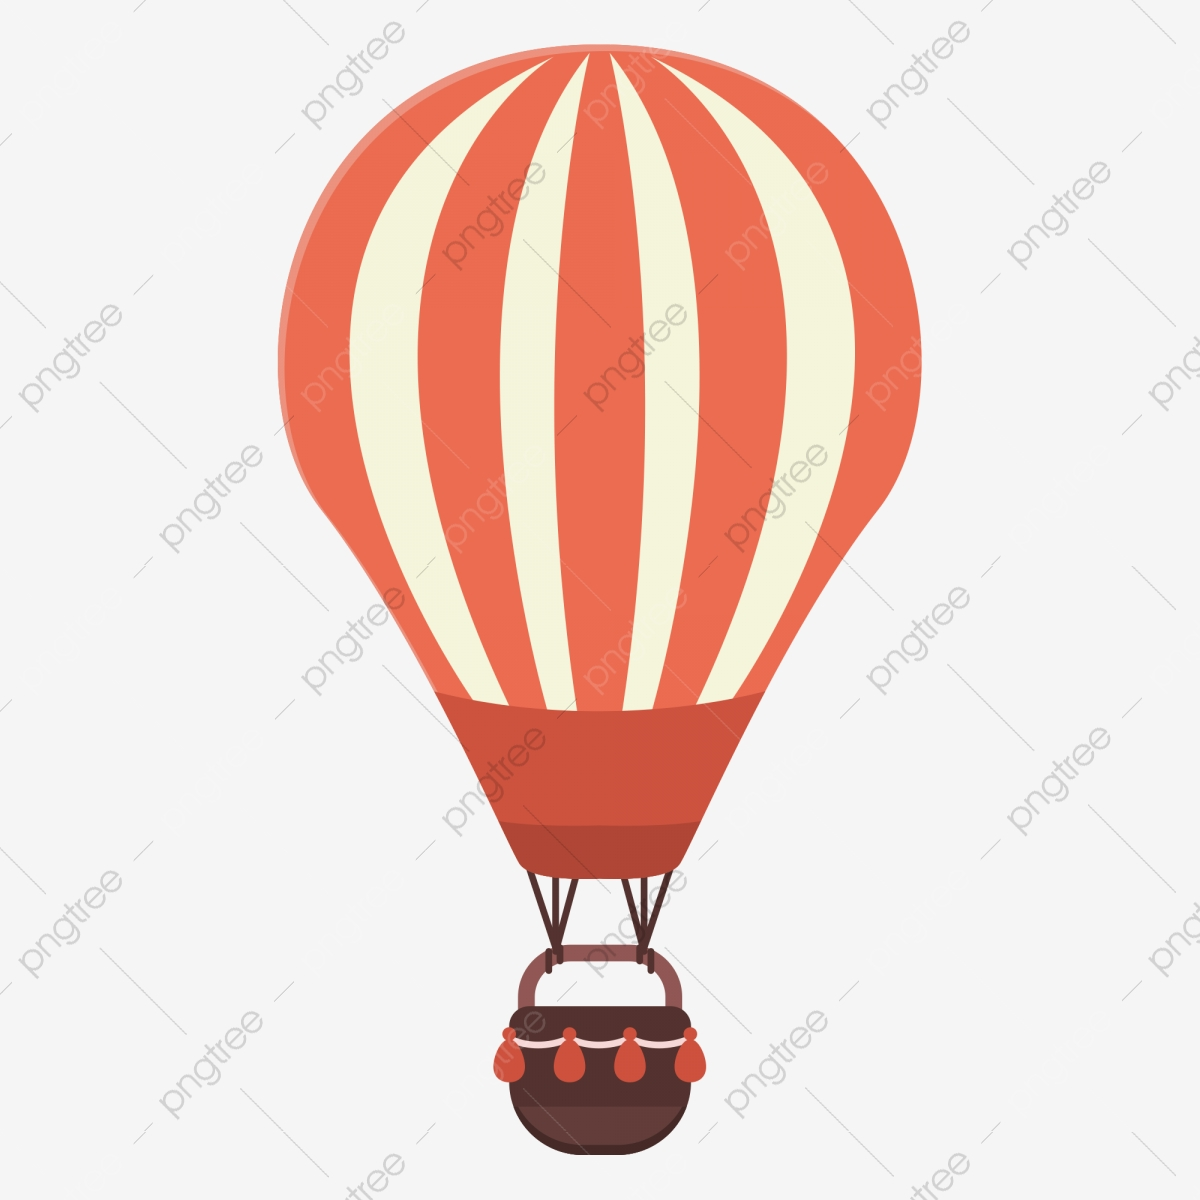 Beautiful Hot Air Balloon, Balloon Clipart, Hot Air Balloon, Colored.